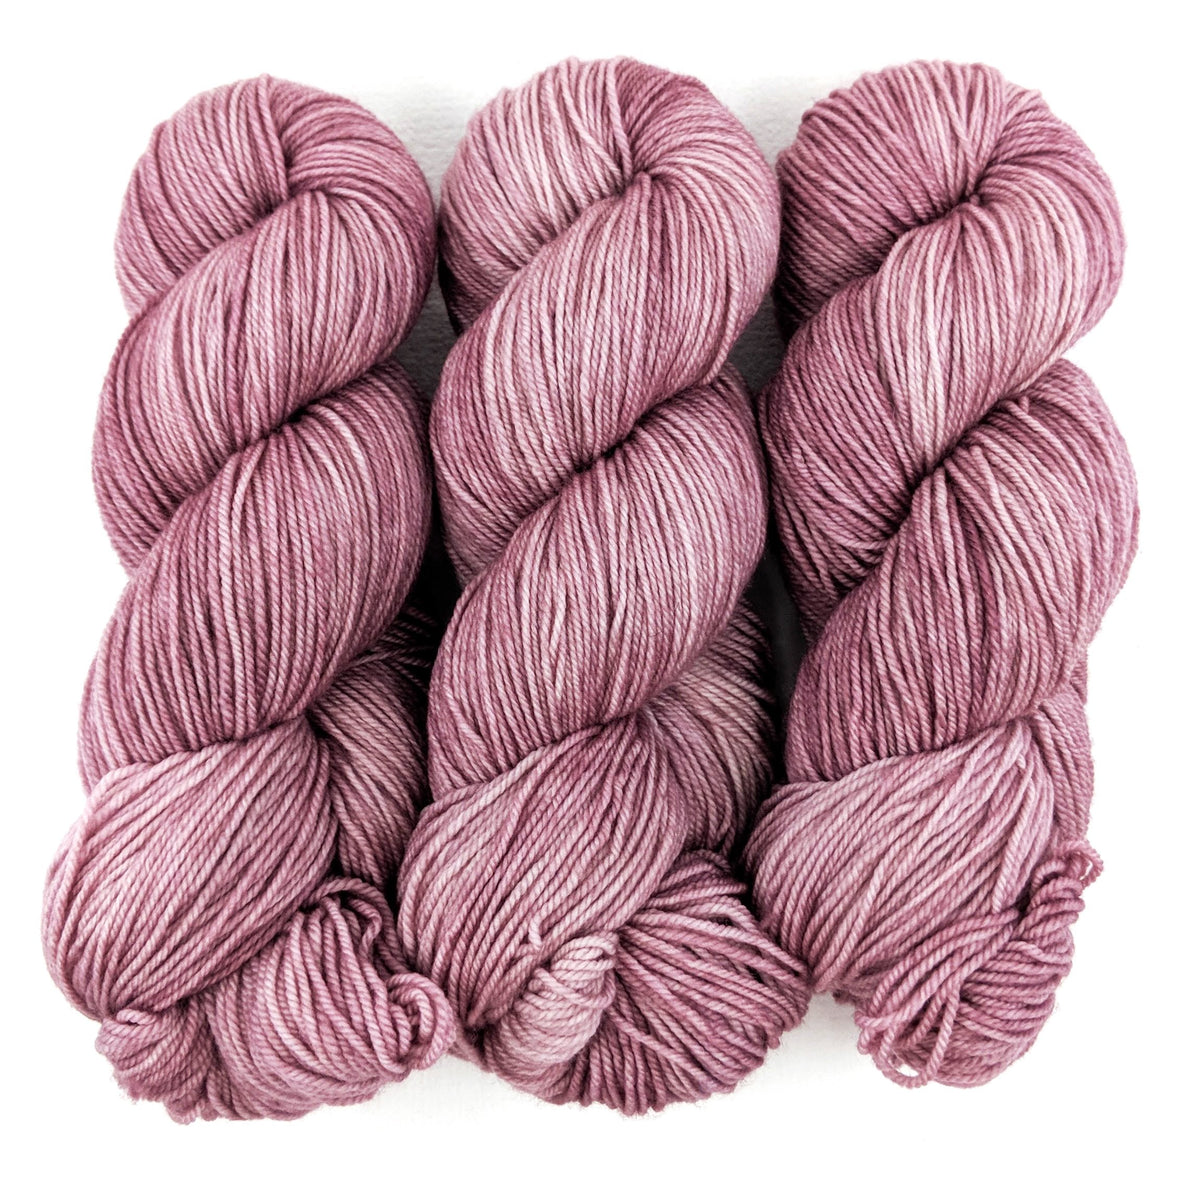 Dusty Rose in Worsted Weight